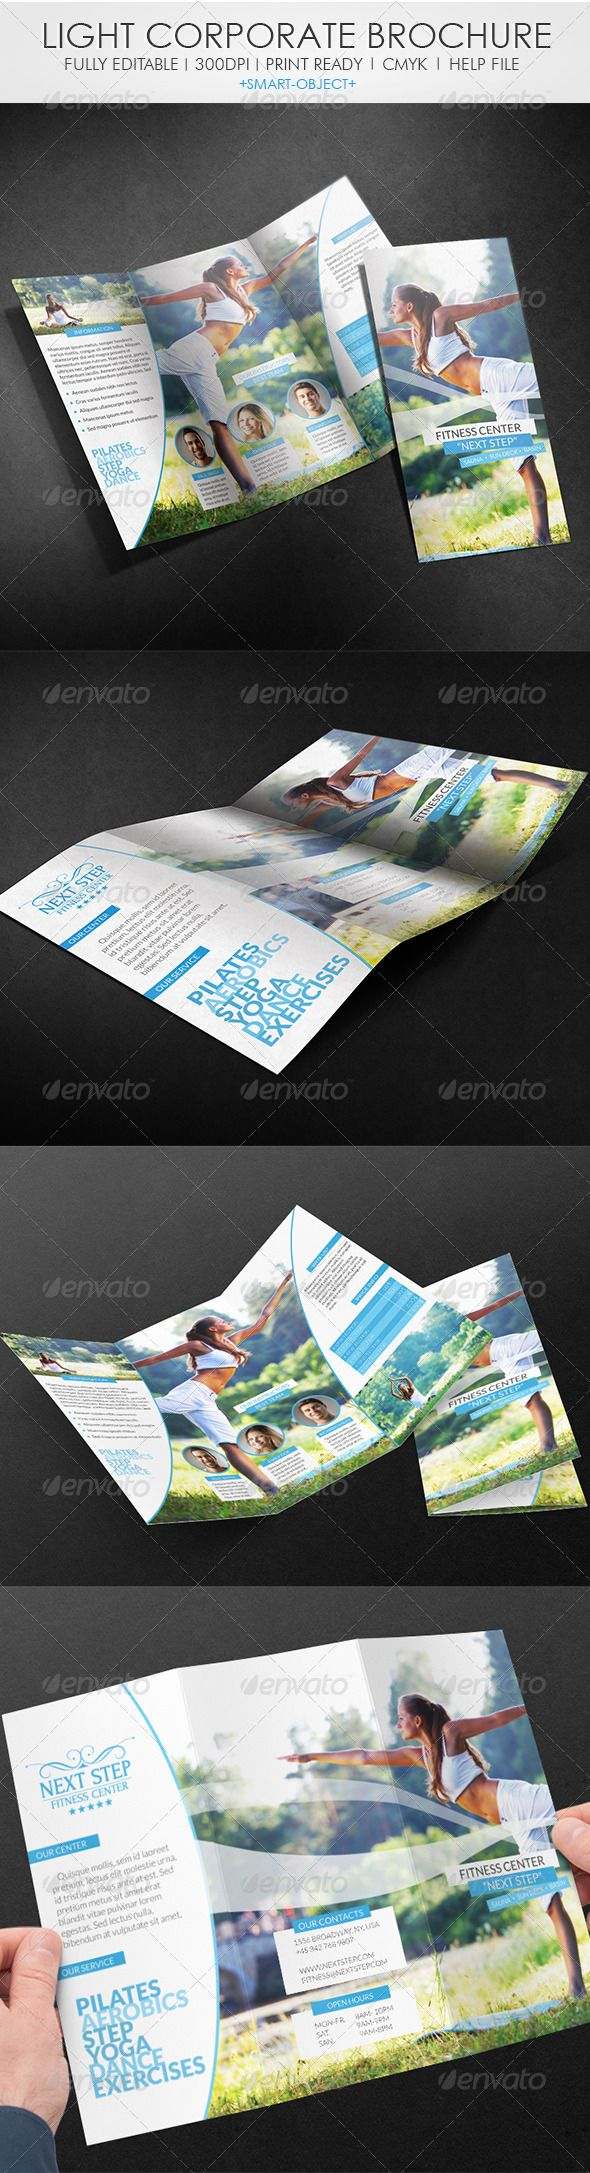 Light Corporate Tri-fold Brochure  http://graphicriver.net/item/light-corporate-trifold-brochure/4524234?WT.ac=portfolio_1=portfolio_author=Realstar